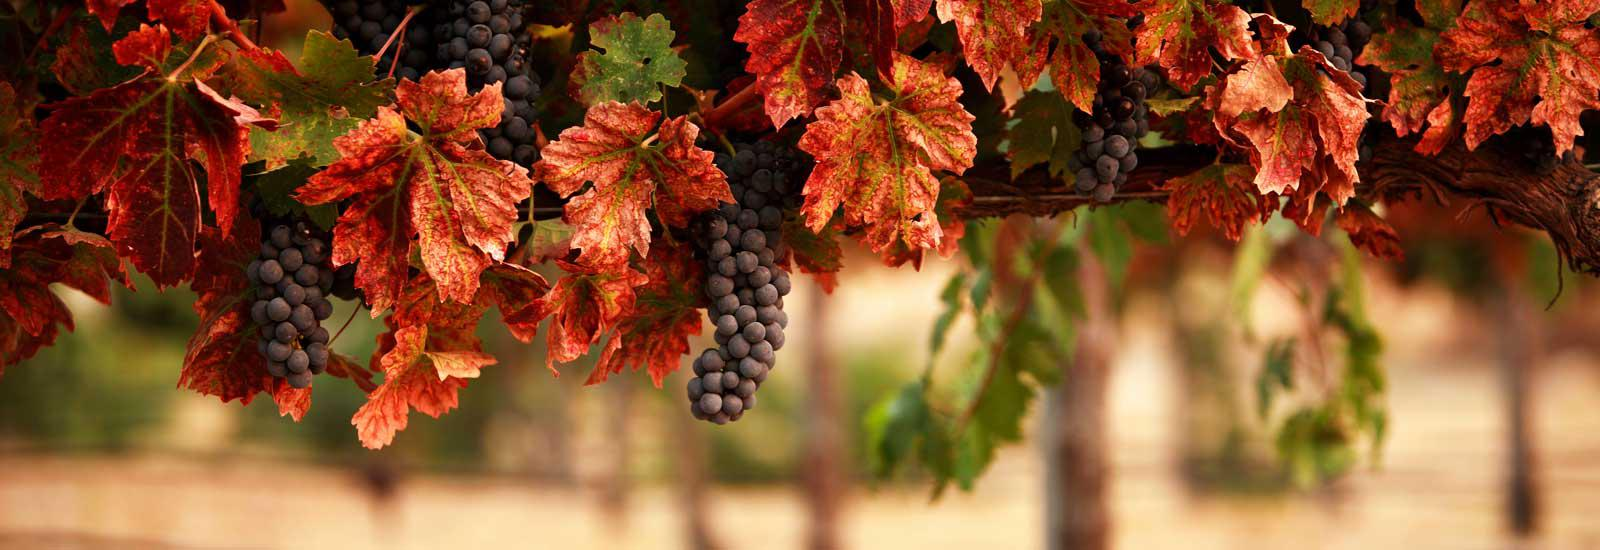 Fall Grapes